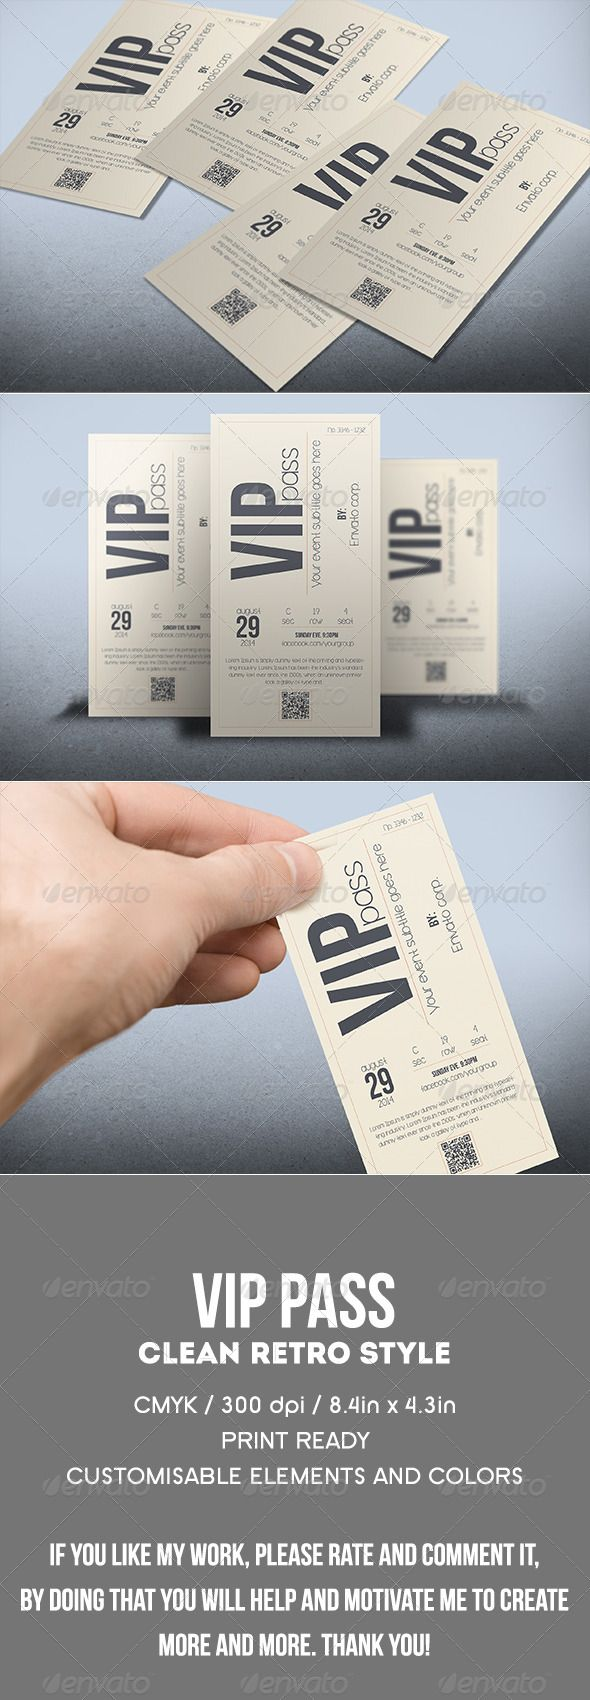 Multipurpose retro VIP PASS #graphicriver